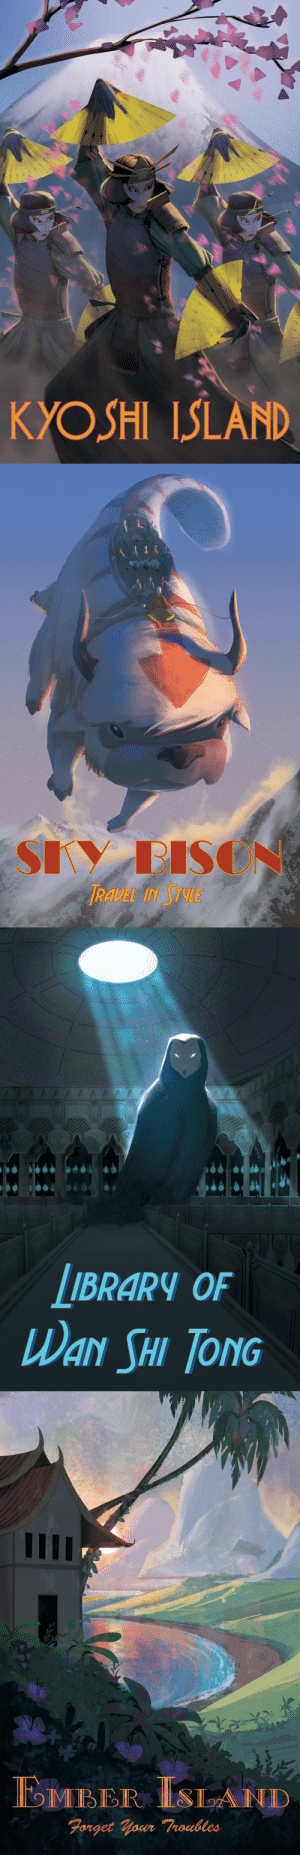 pablonotpicasso:Some travel posters inspired by Avatar: The Last Airbender! I'll be at Silicon Valley Comic Con this weekend selling these as prints as well; Artist Alley #145!: KYOSHI ISLAND   RAVEL IN JTVLE   IBRARY OF  WaY SHI Tond   DMBER SL ND  awr pablonotpicasso:Some travel posters inspired by Avatar: The Last Airbender! I'll be at Silicon Valley Comic Con this weekend selling these as prints as well; Artist Alley #145!